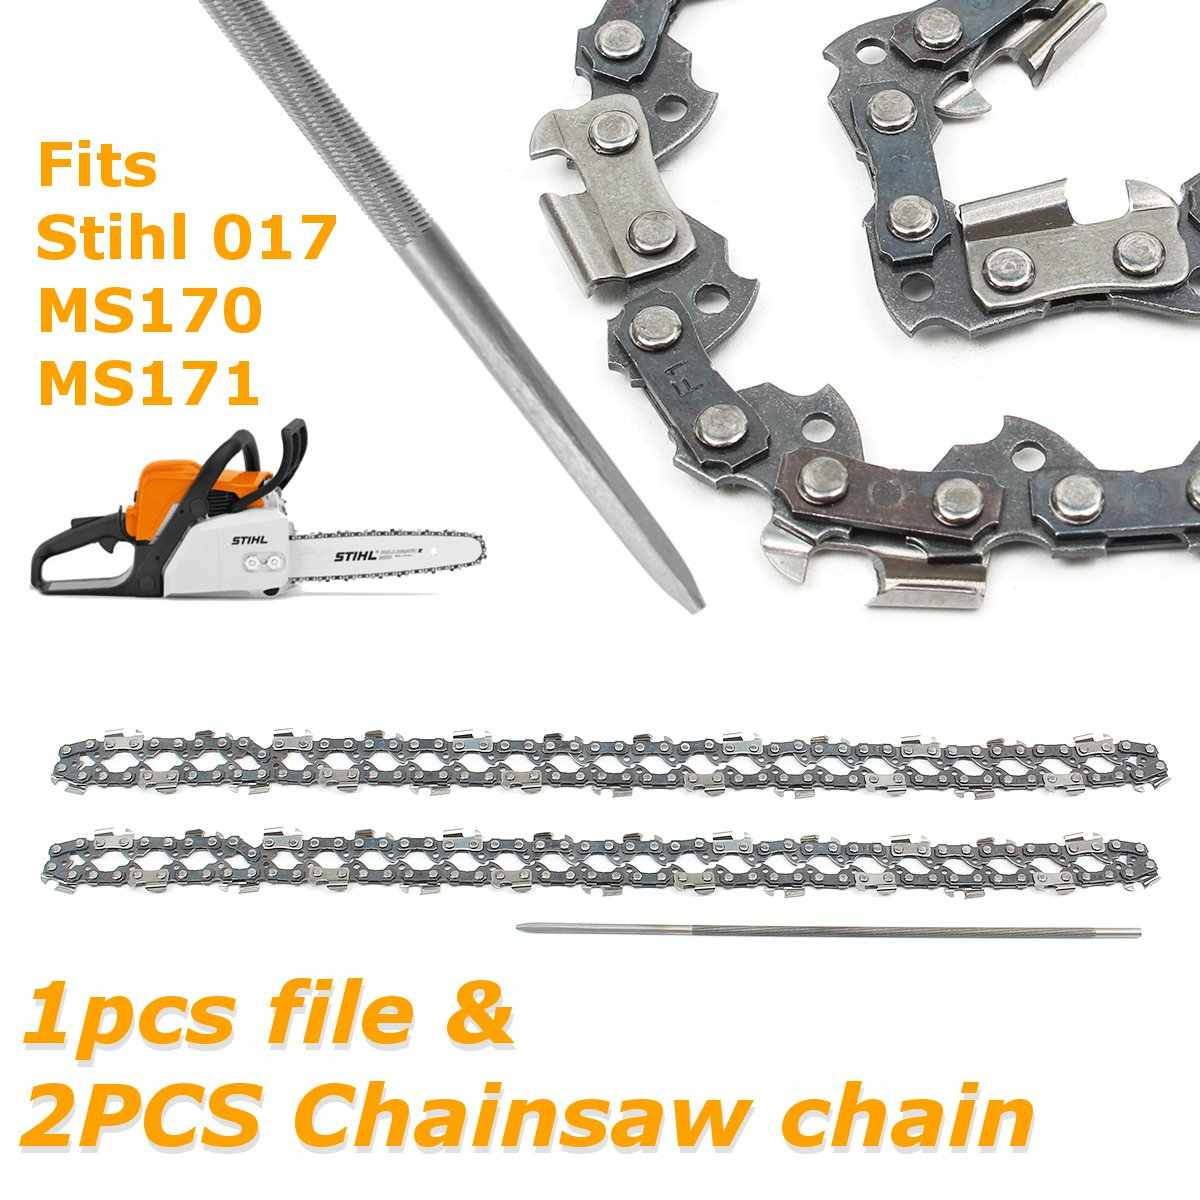 2pcs 14 Inch Chainsaw Saw Chain with File Fit for Stihl 017 MS170 MS171  Structural alloy steel Chainsaw Chai with File